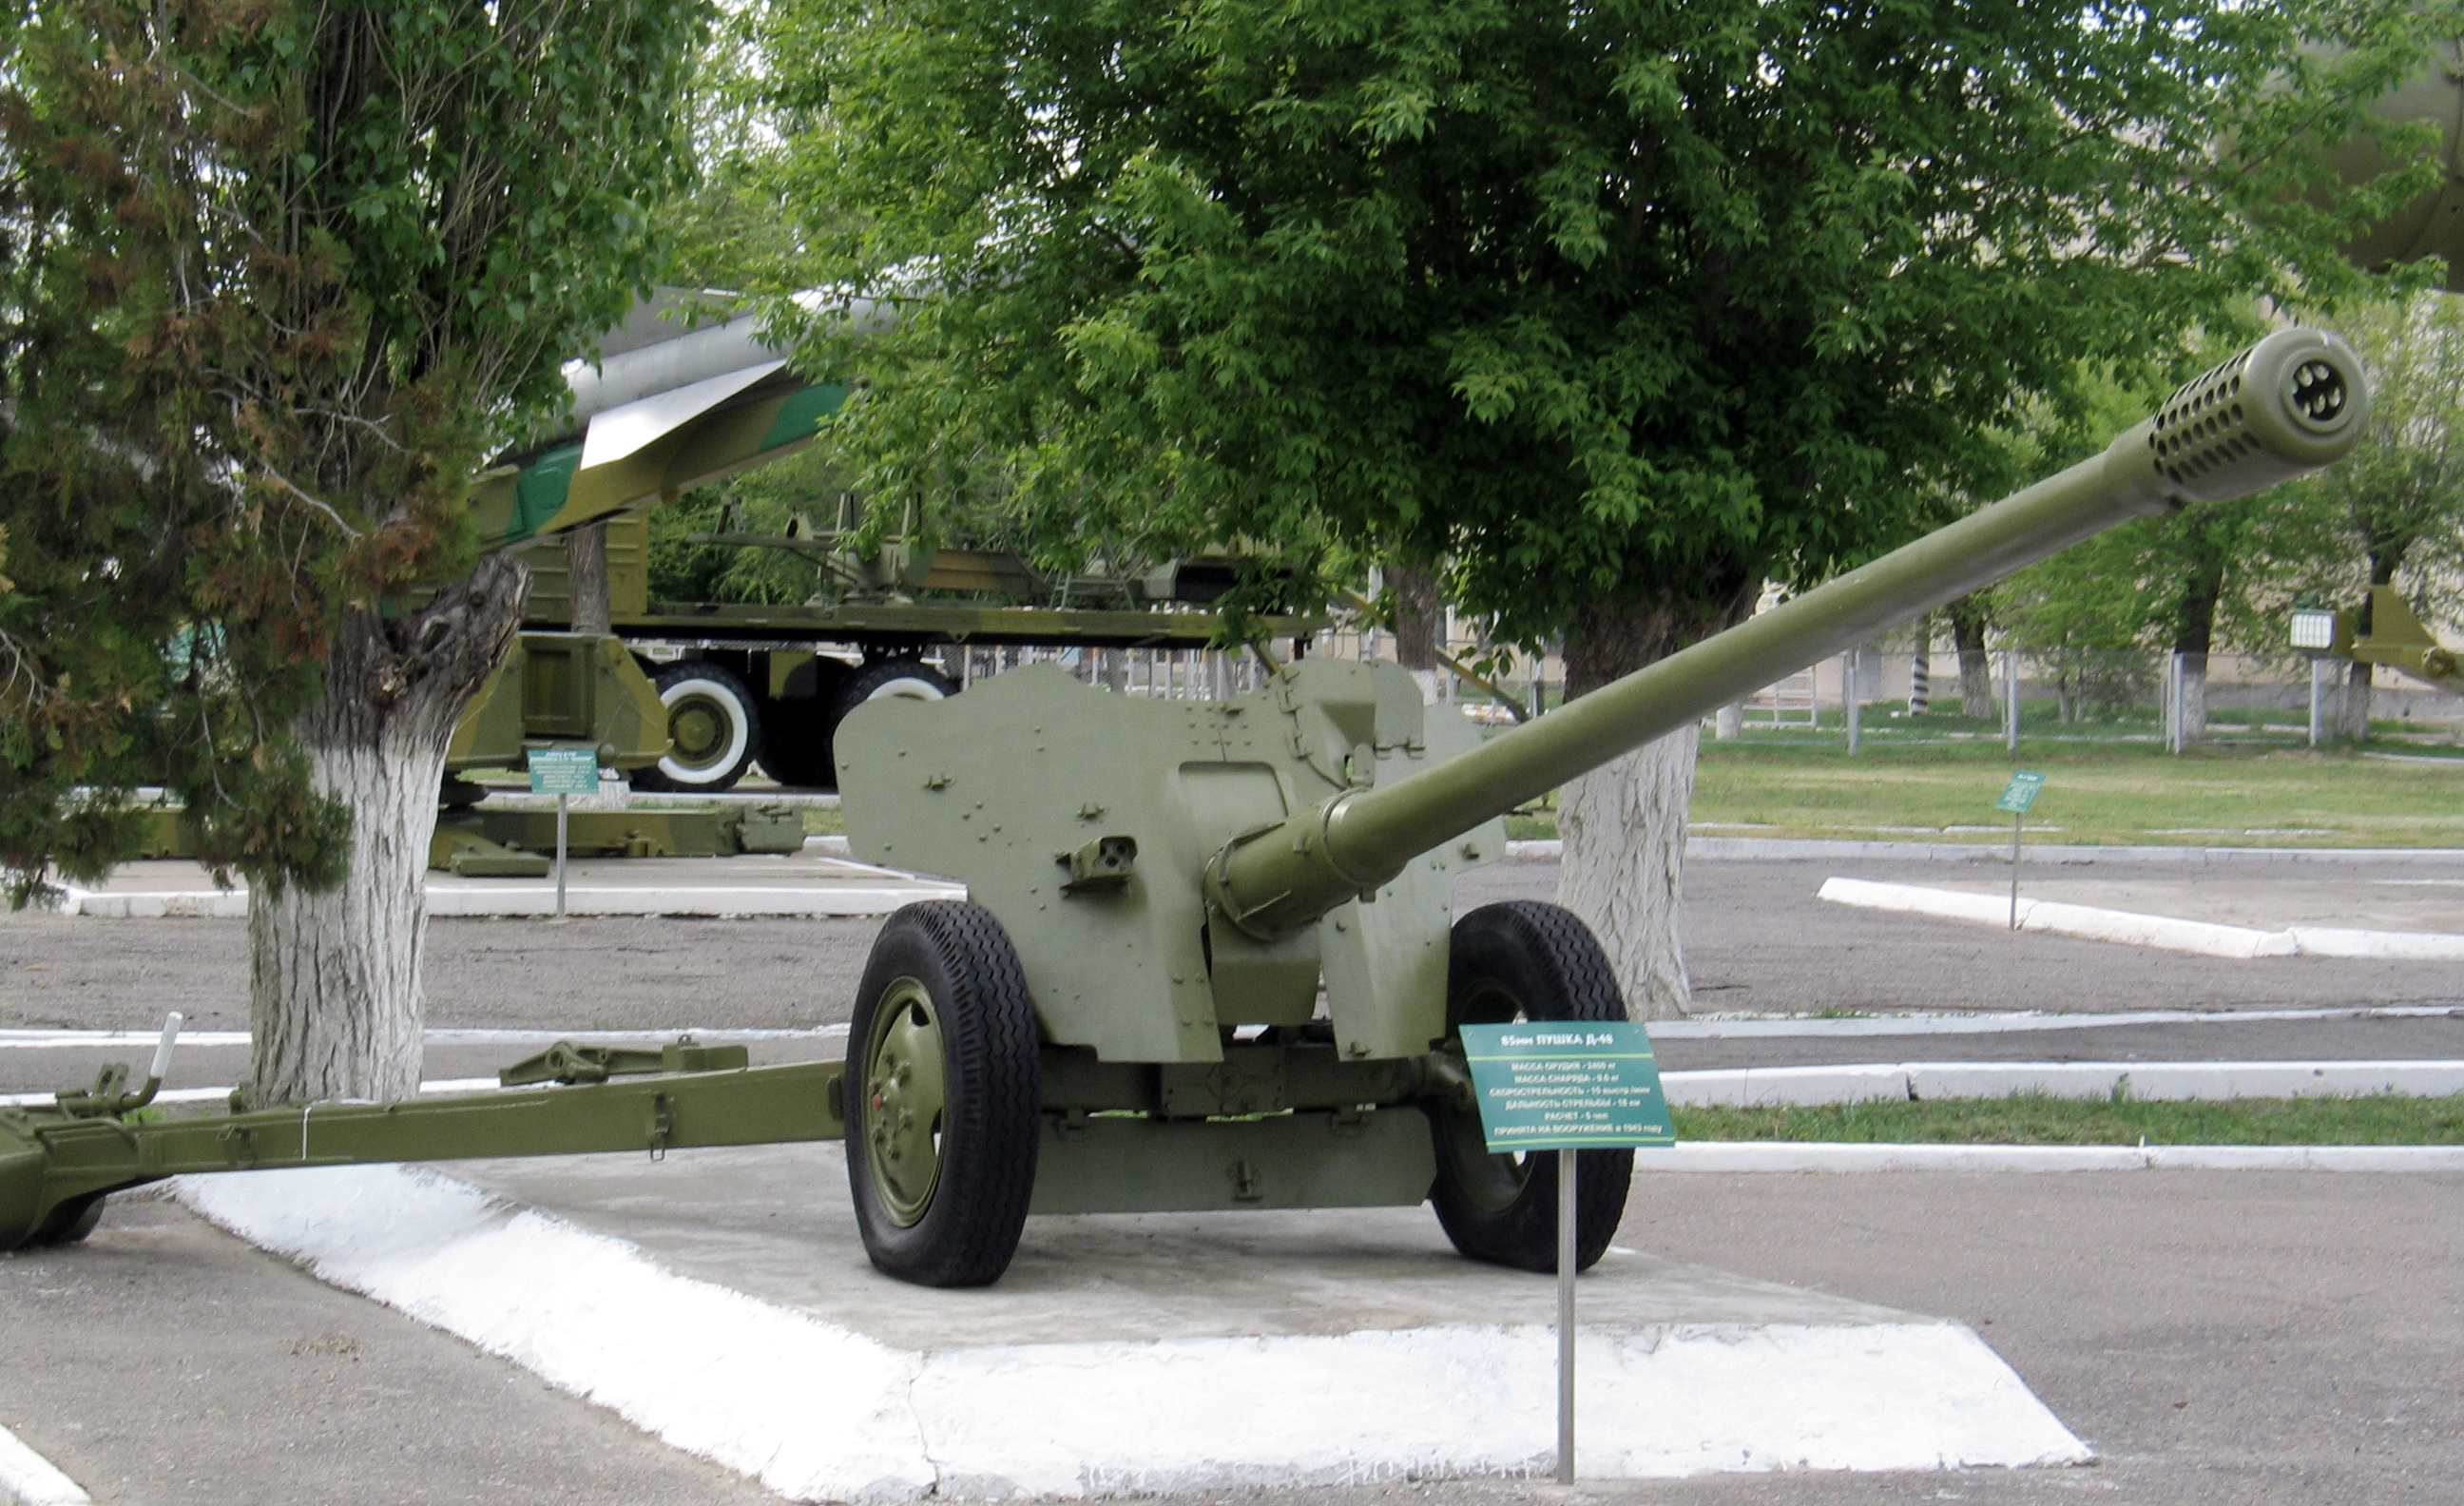 German 50 Mm Anti Tank Gun: File:85-mm Antitank Gun D-48 Rf KY.jpg